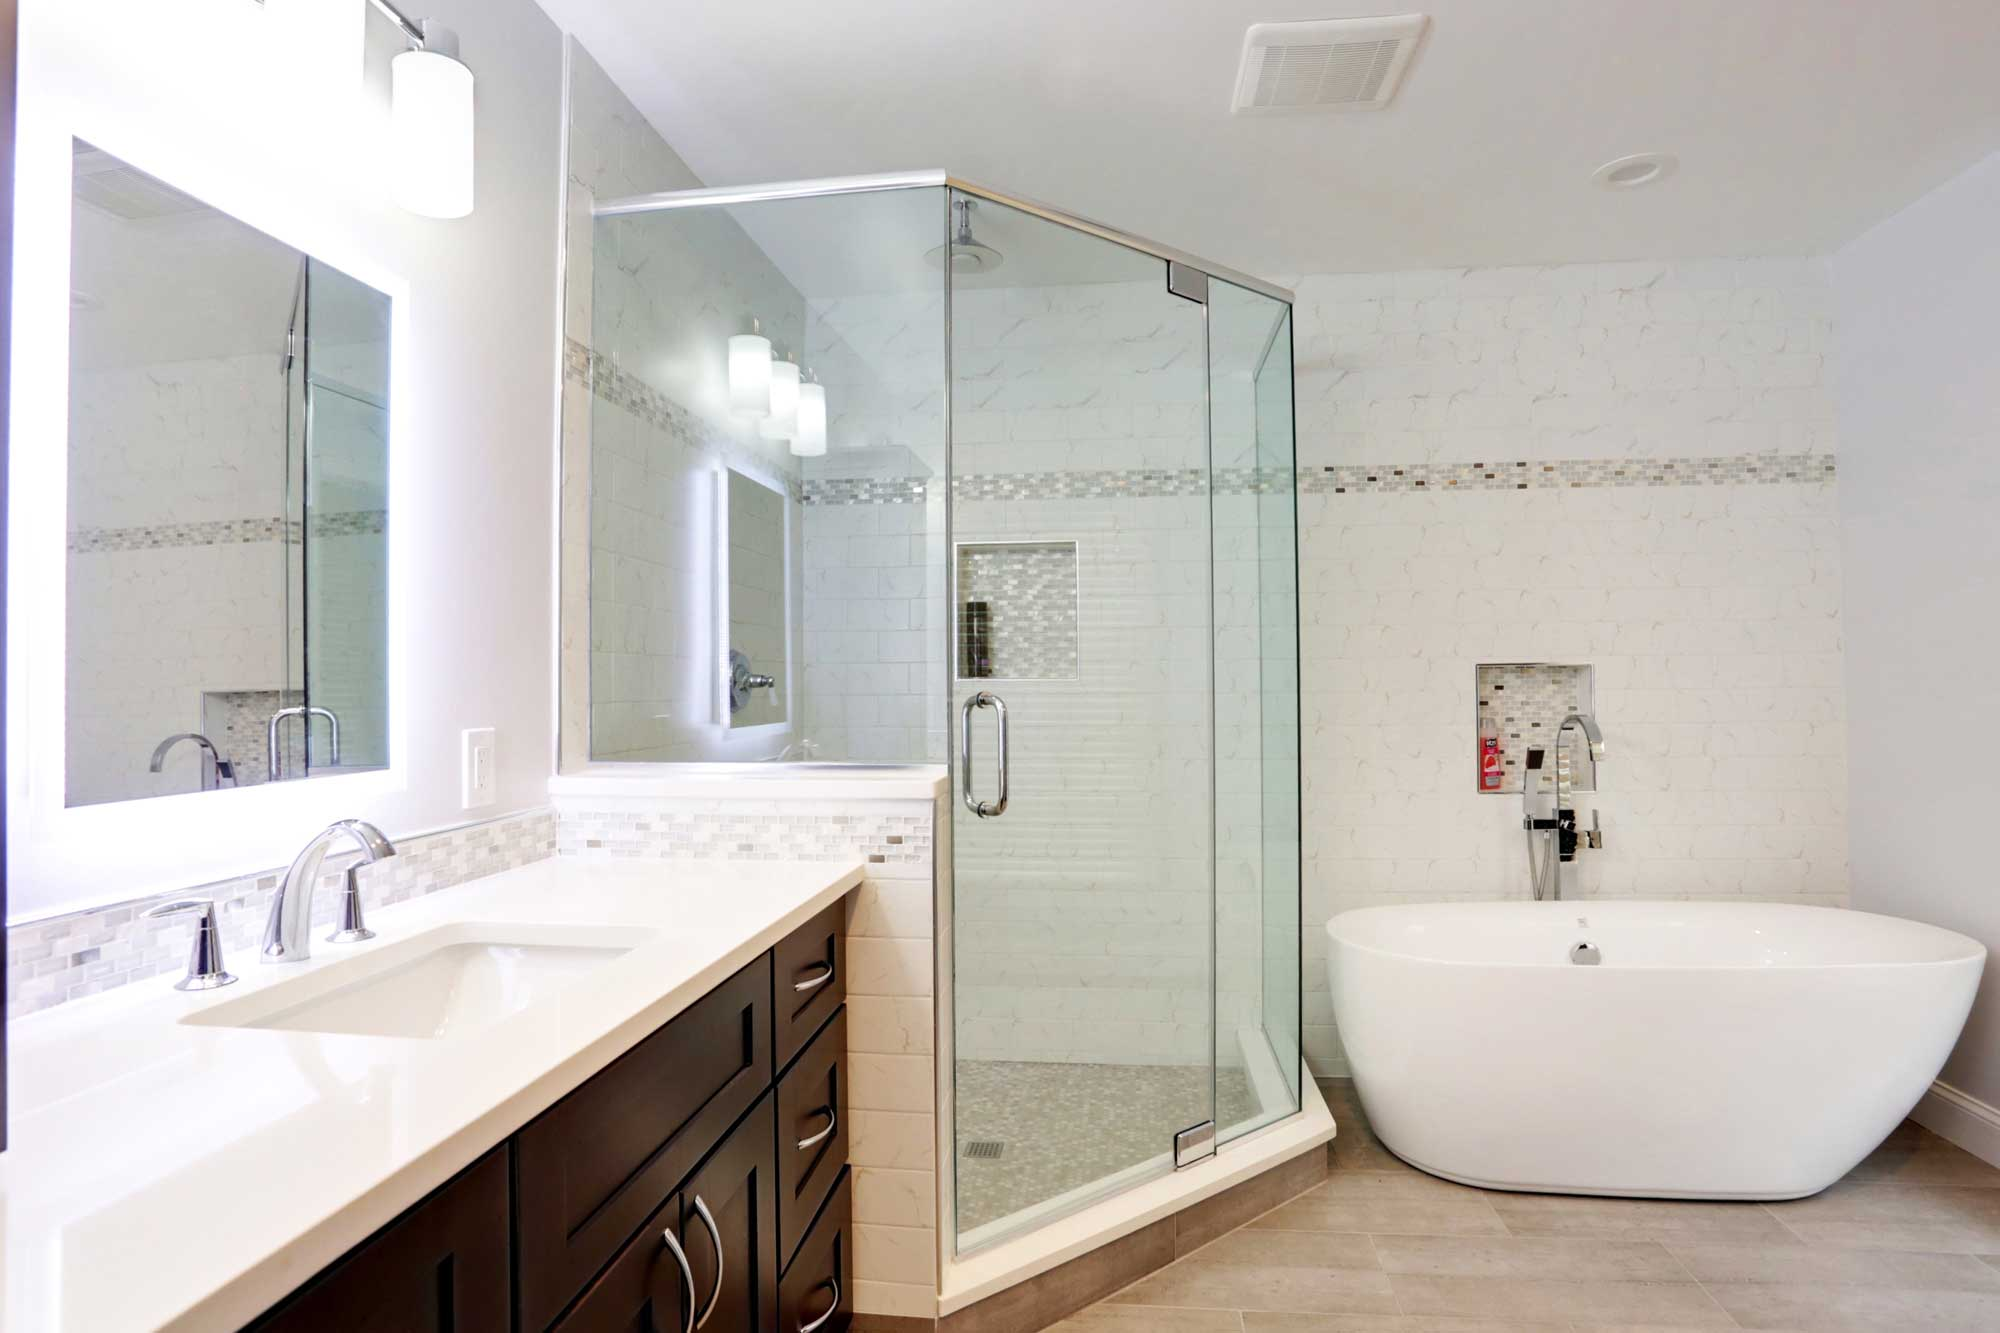 Kitchen Bathroom Remodeling Design Build In Silver Spring MD - Building a new bathroom